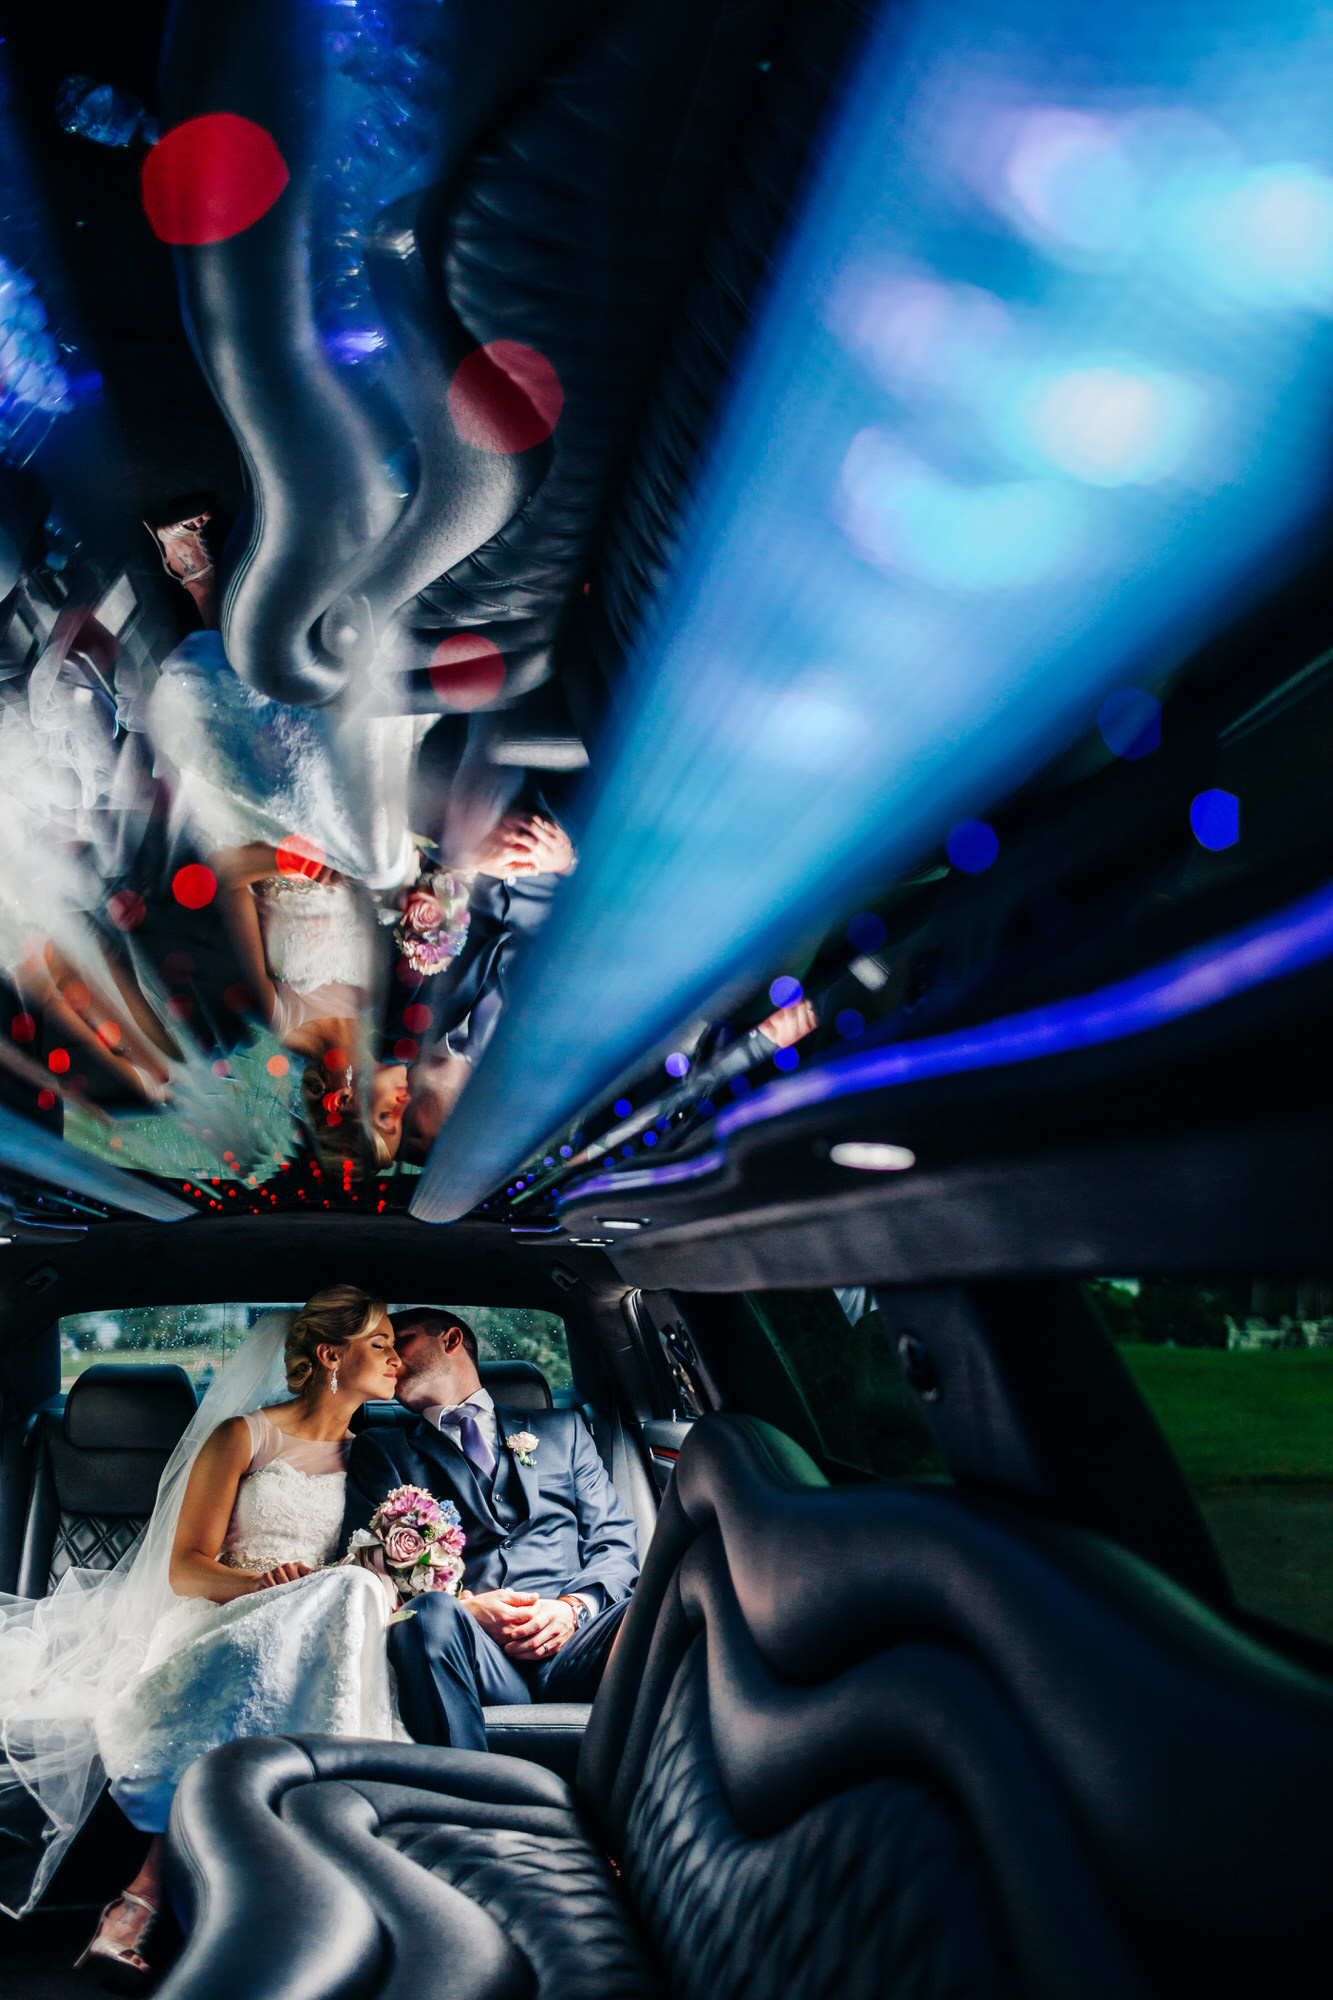 Reflection of bride and groom in limousine ceiling - photo by Ken Pak